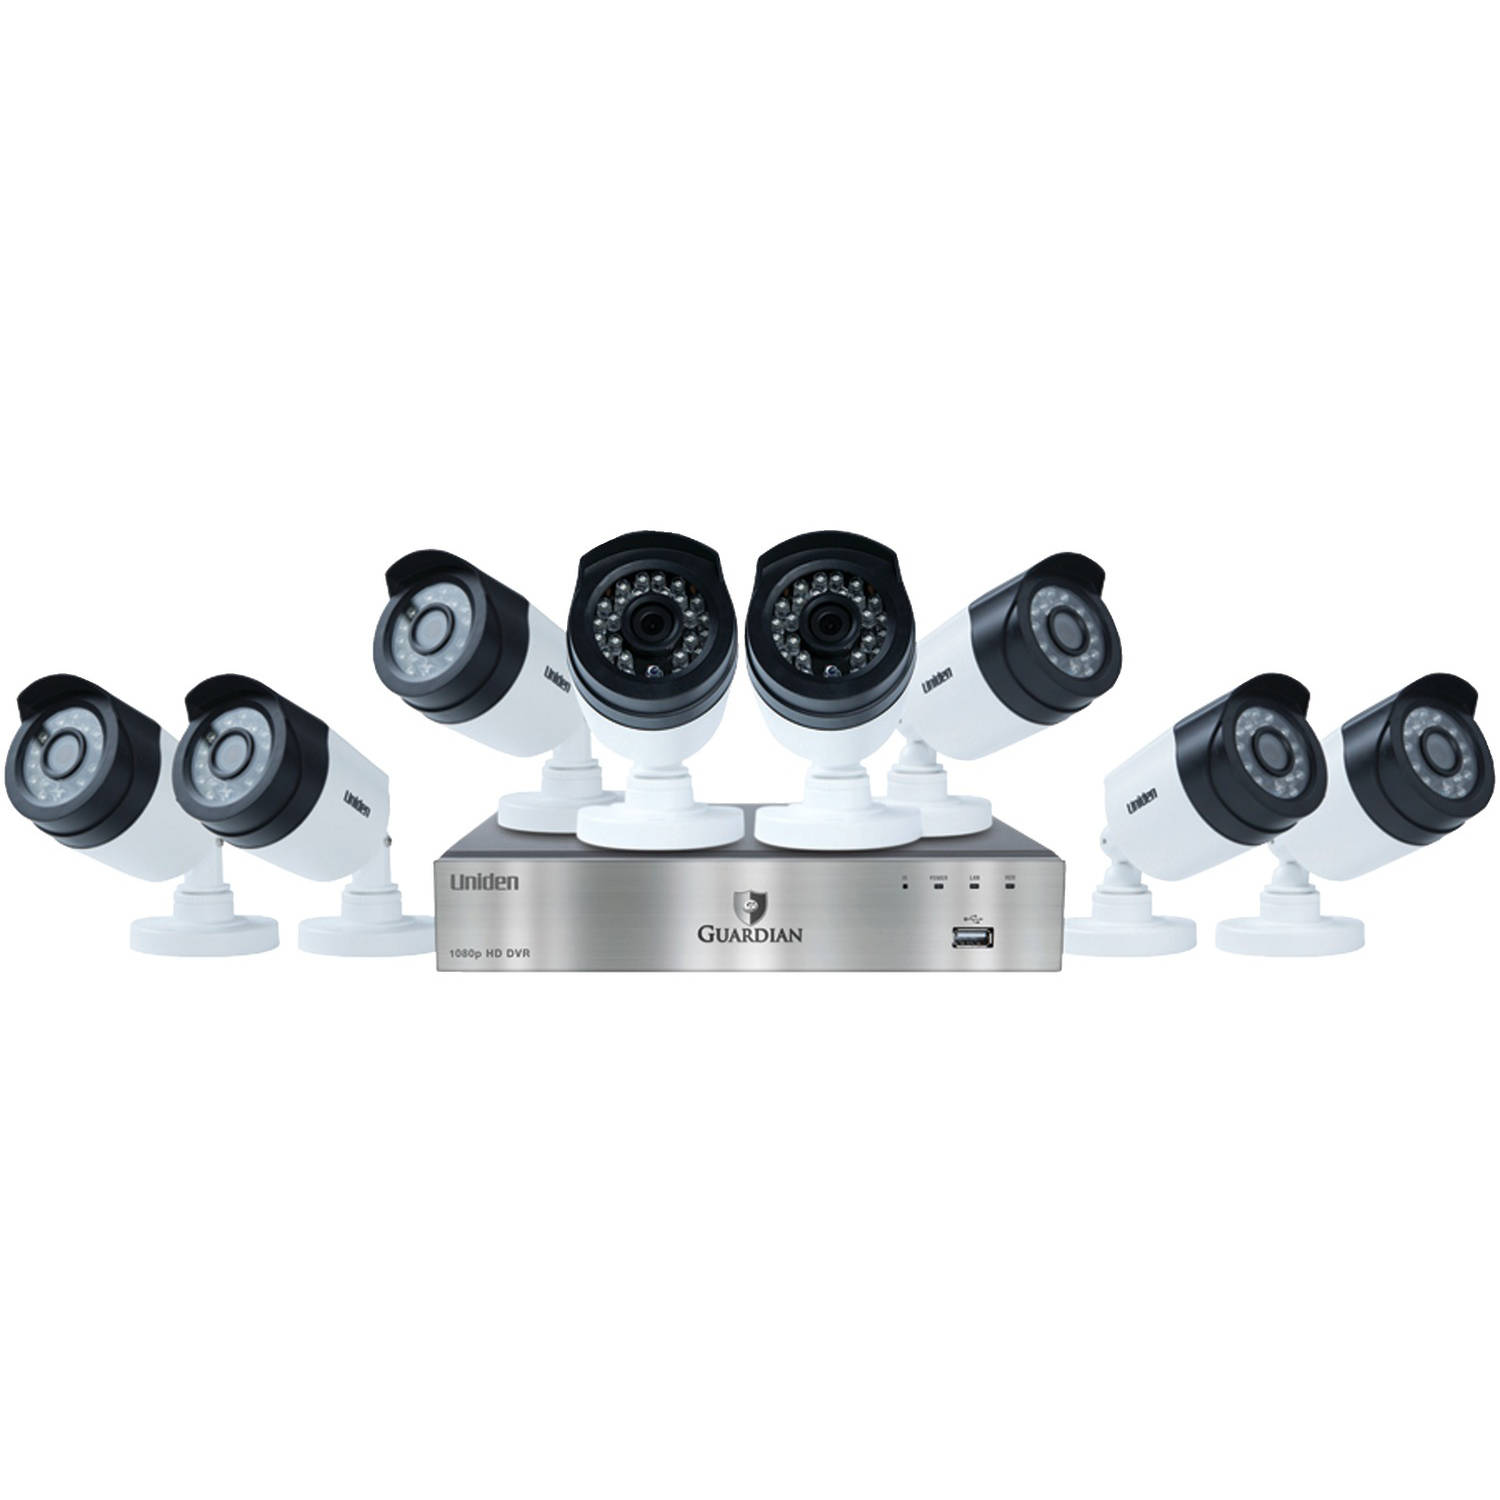 Uniden G6880D2 Guardian 1080p 1TB DVR with Outdoor Bullet Cameras (8-Channel, 8 Cameras) by Uniden